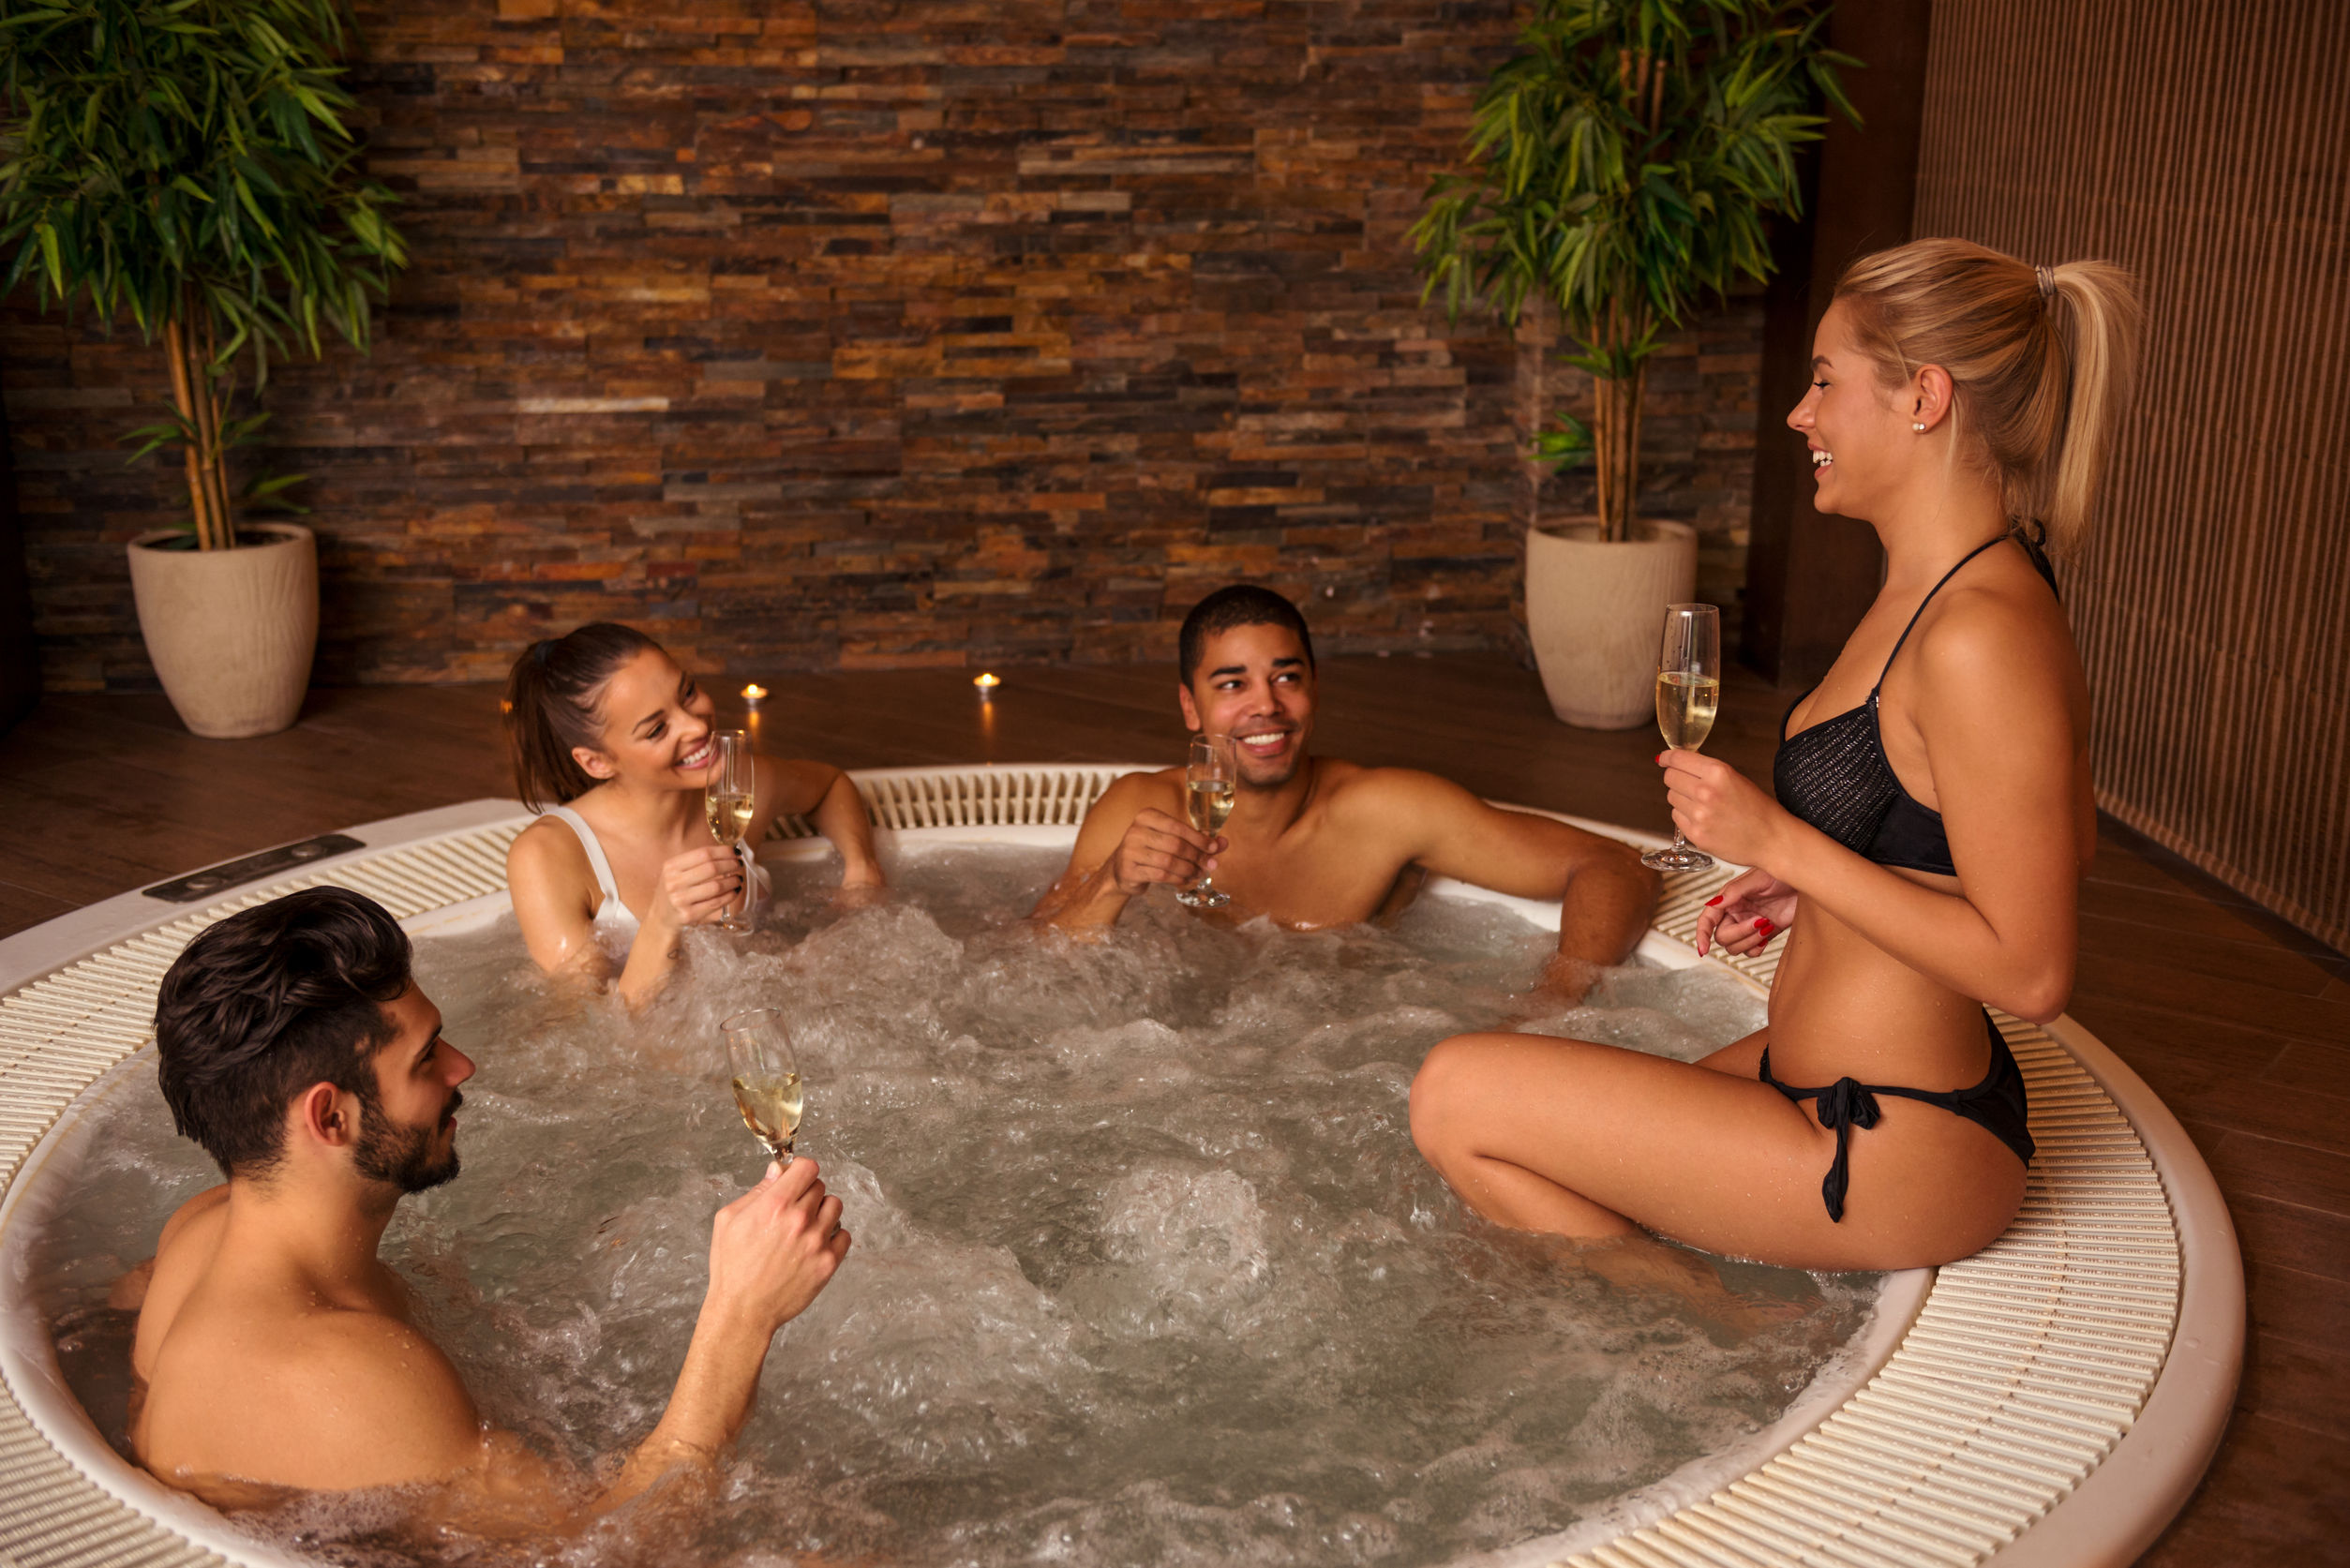 Best 4 Person Hot Tub Reviewed and Rated